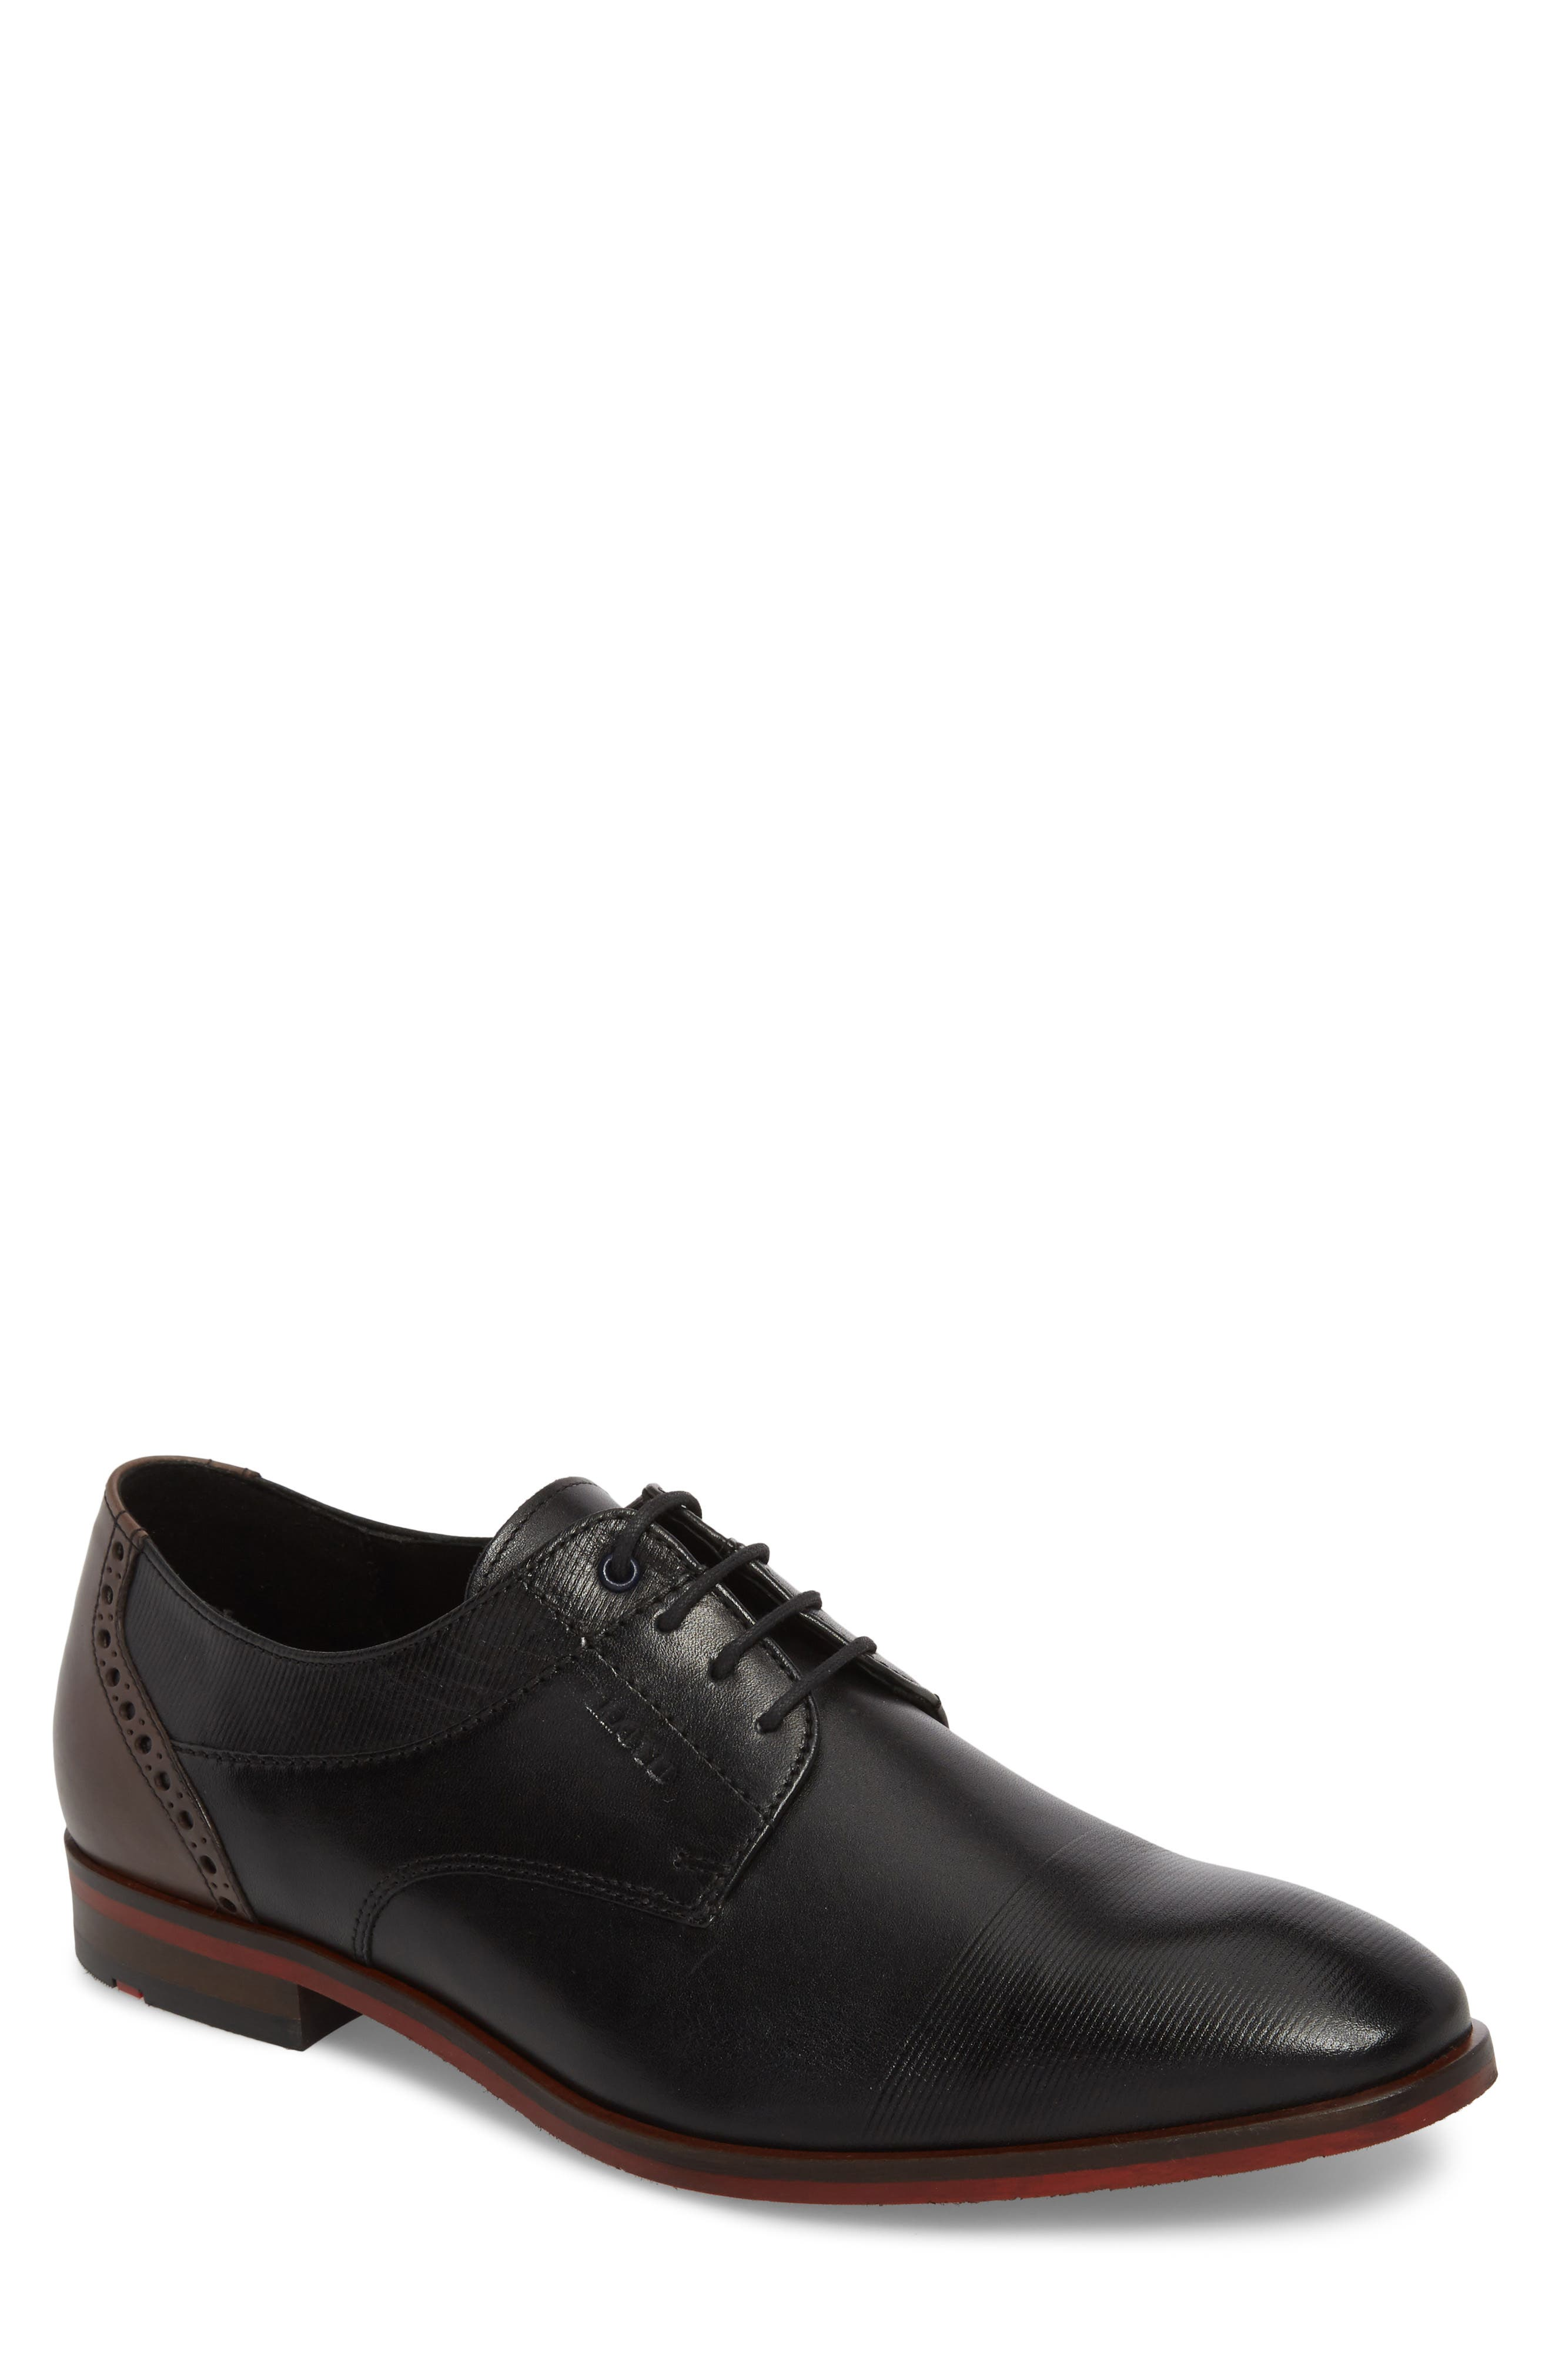 Henley Embossed Cap Toe Derby,                         Main,                         color, BLACK/ BLUE LEATHER